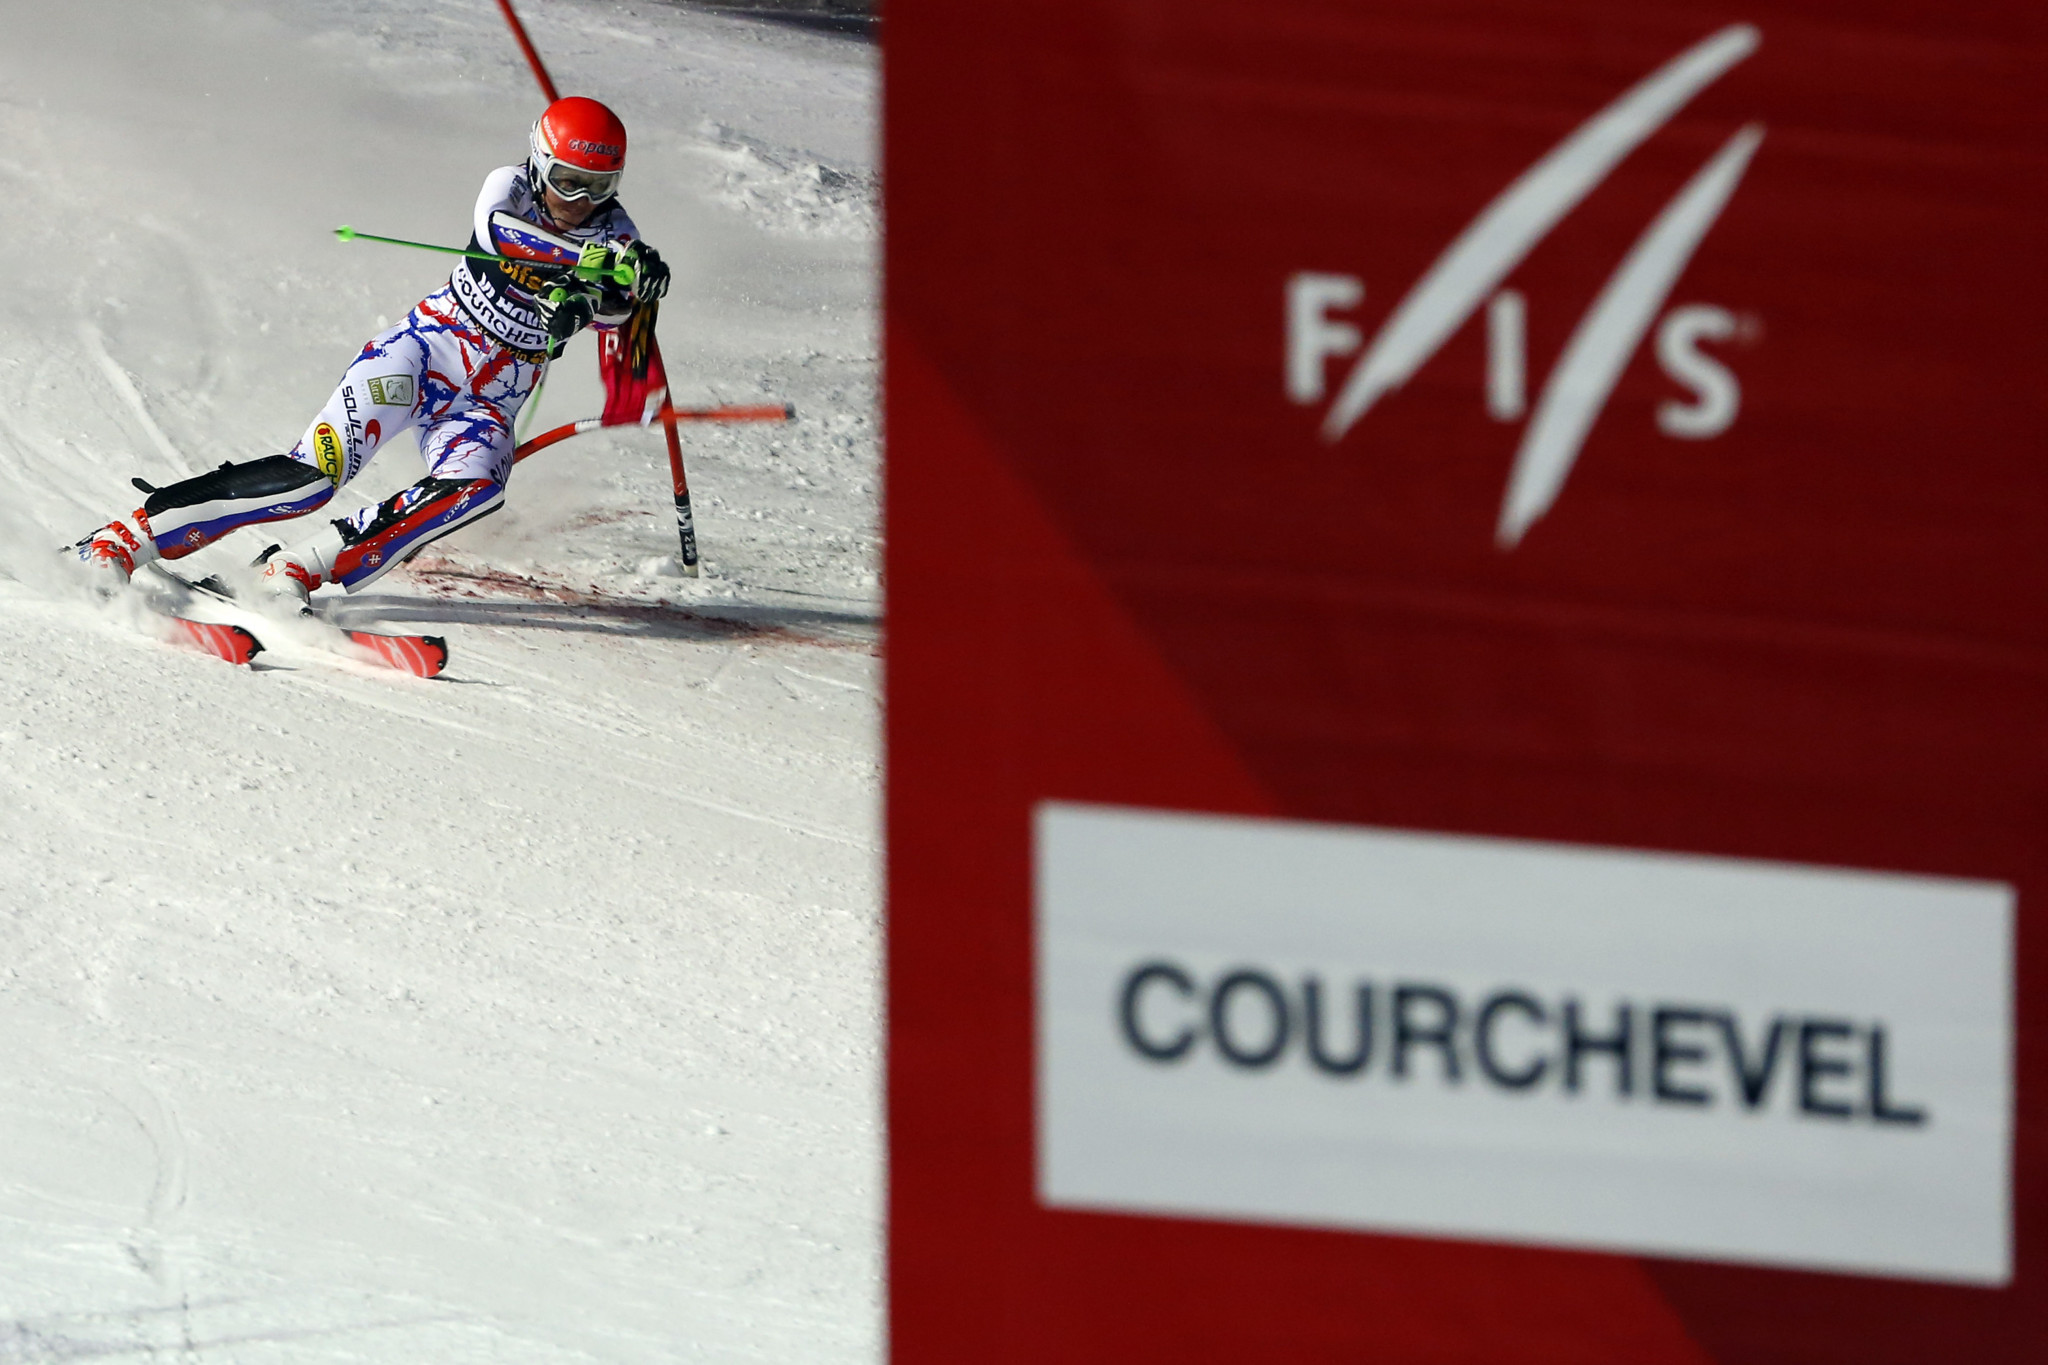 Courchevel-Meribel hosts pre-inspection visit for 2023 FIS Alpine World Ski Championships